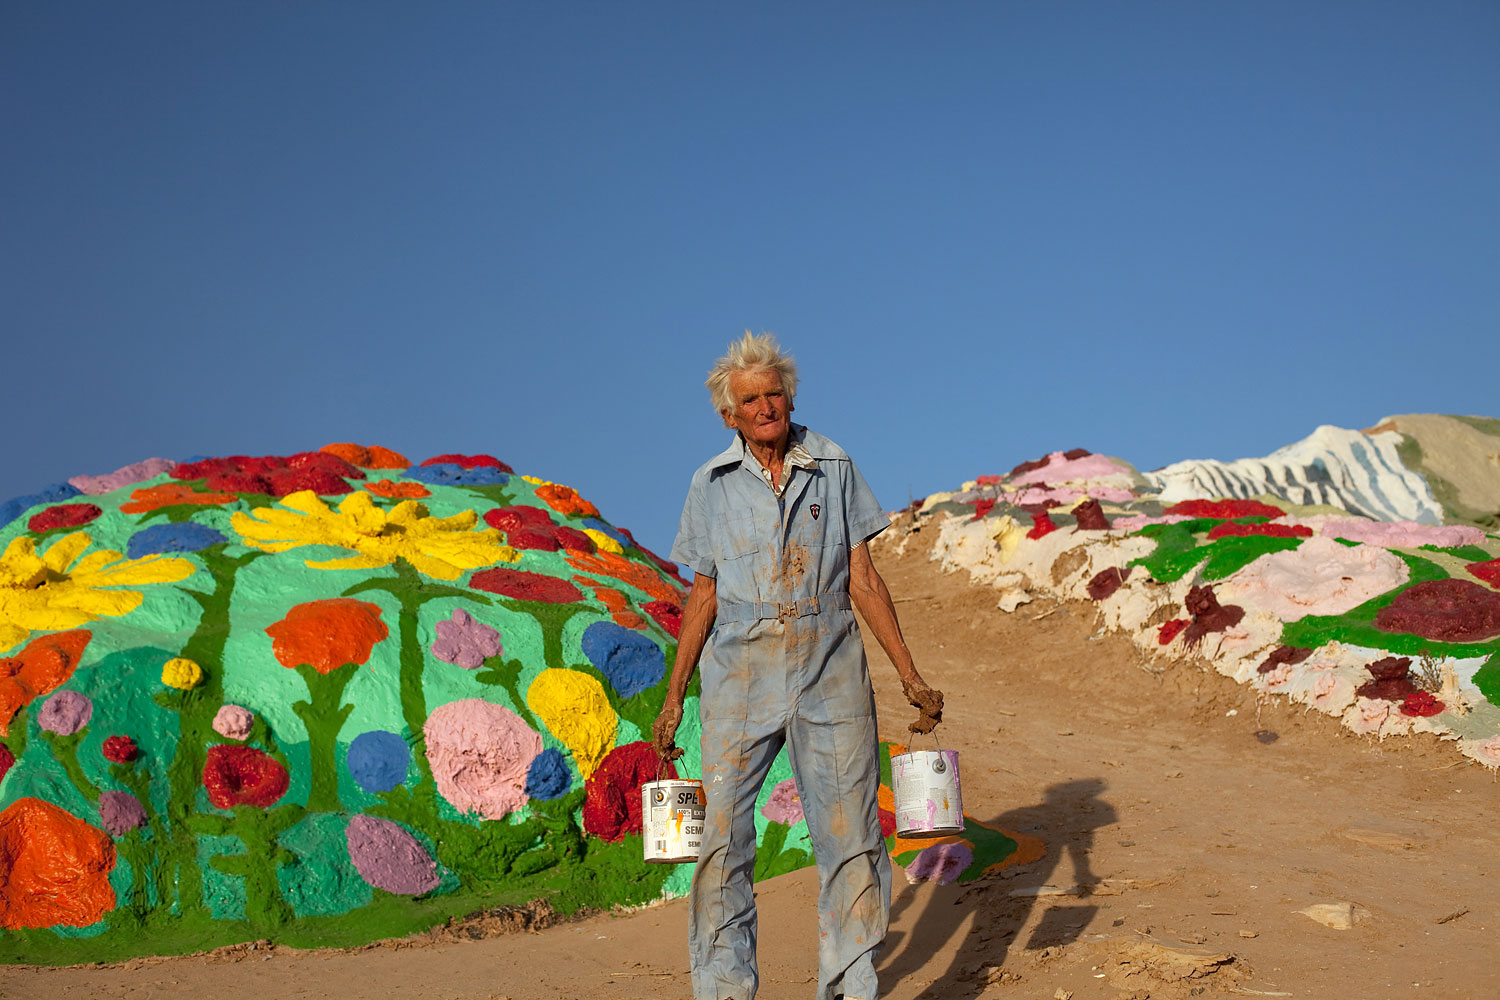 Knight paints a peripheral mound covered in flowers, one of his common themes.